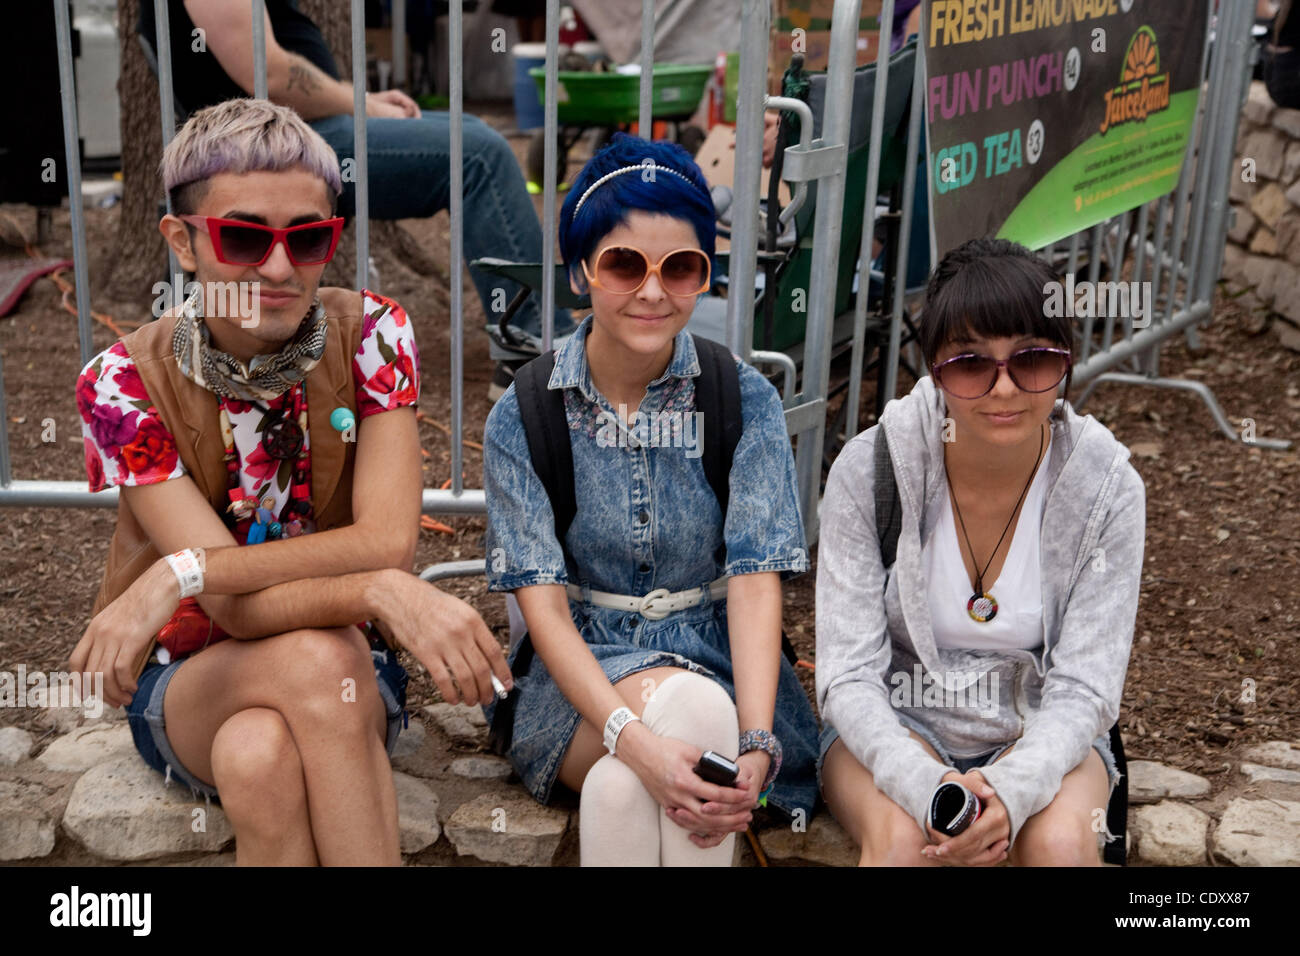 Attendees of  Fun Fun fest in Austin, TX - Stock Image